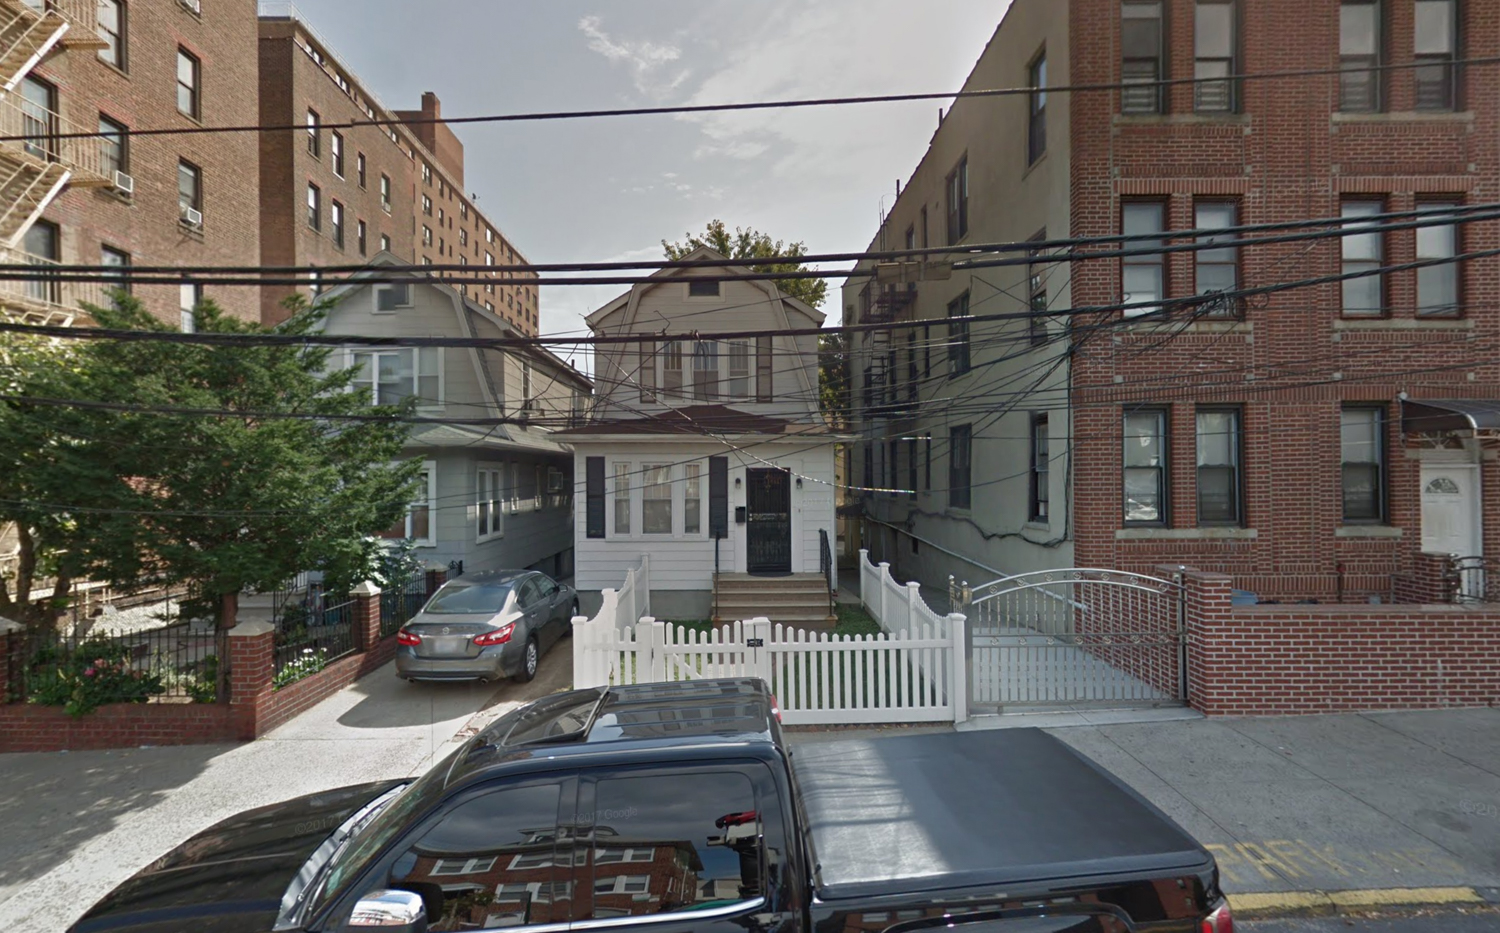 3136 Buhre Avenue, via Google Maps